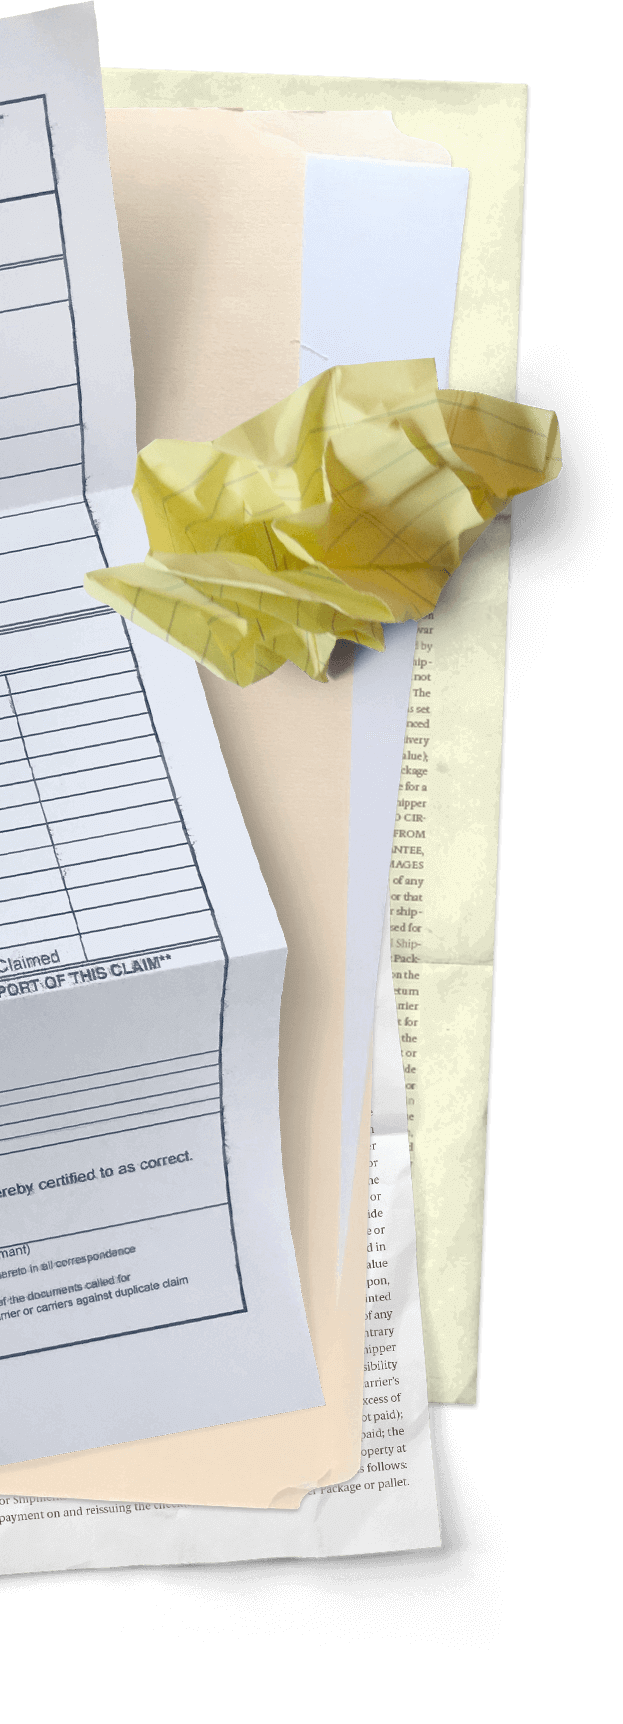 Crumpled yellow paper on top of documents